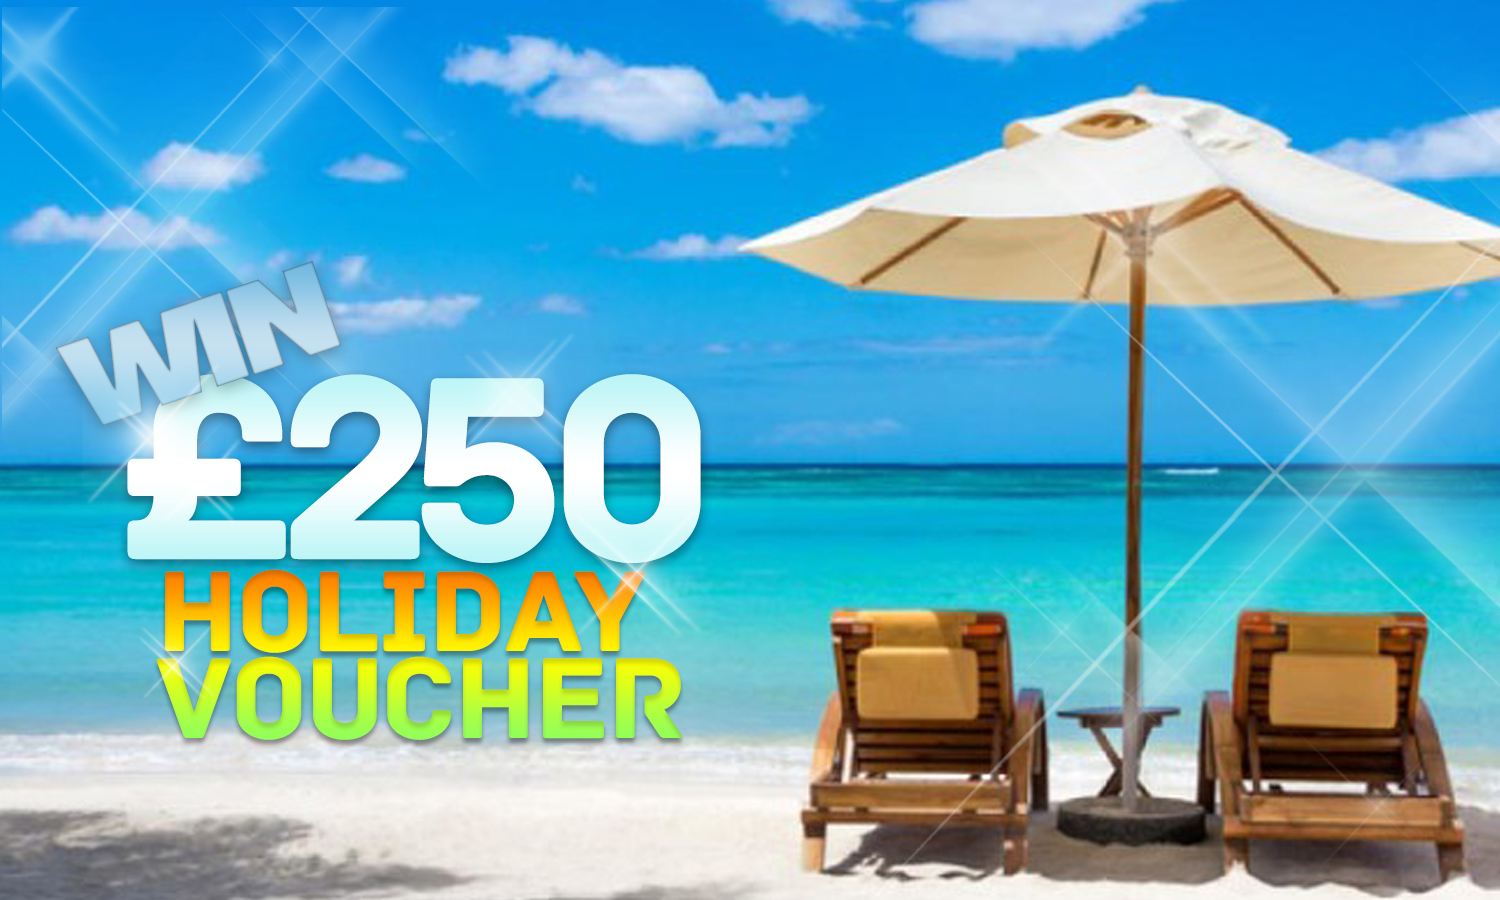 Win £250 Holiday Voucher